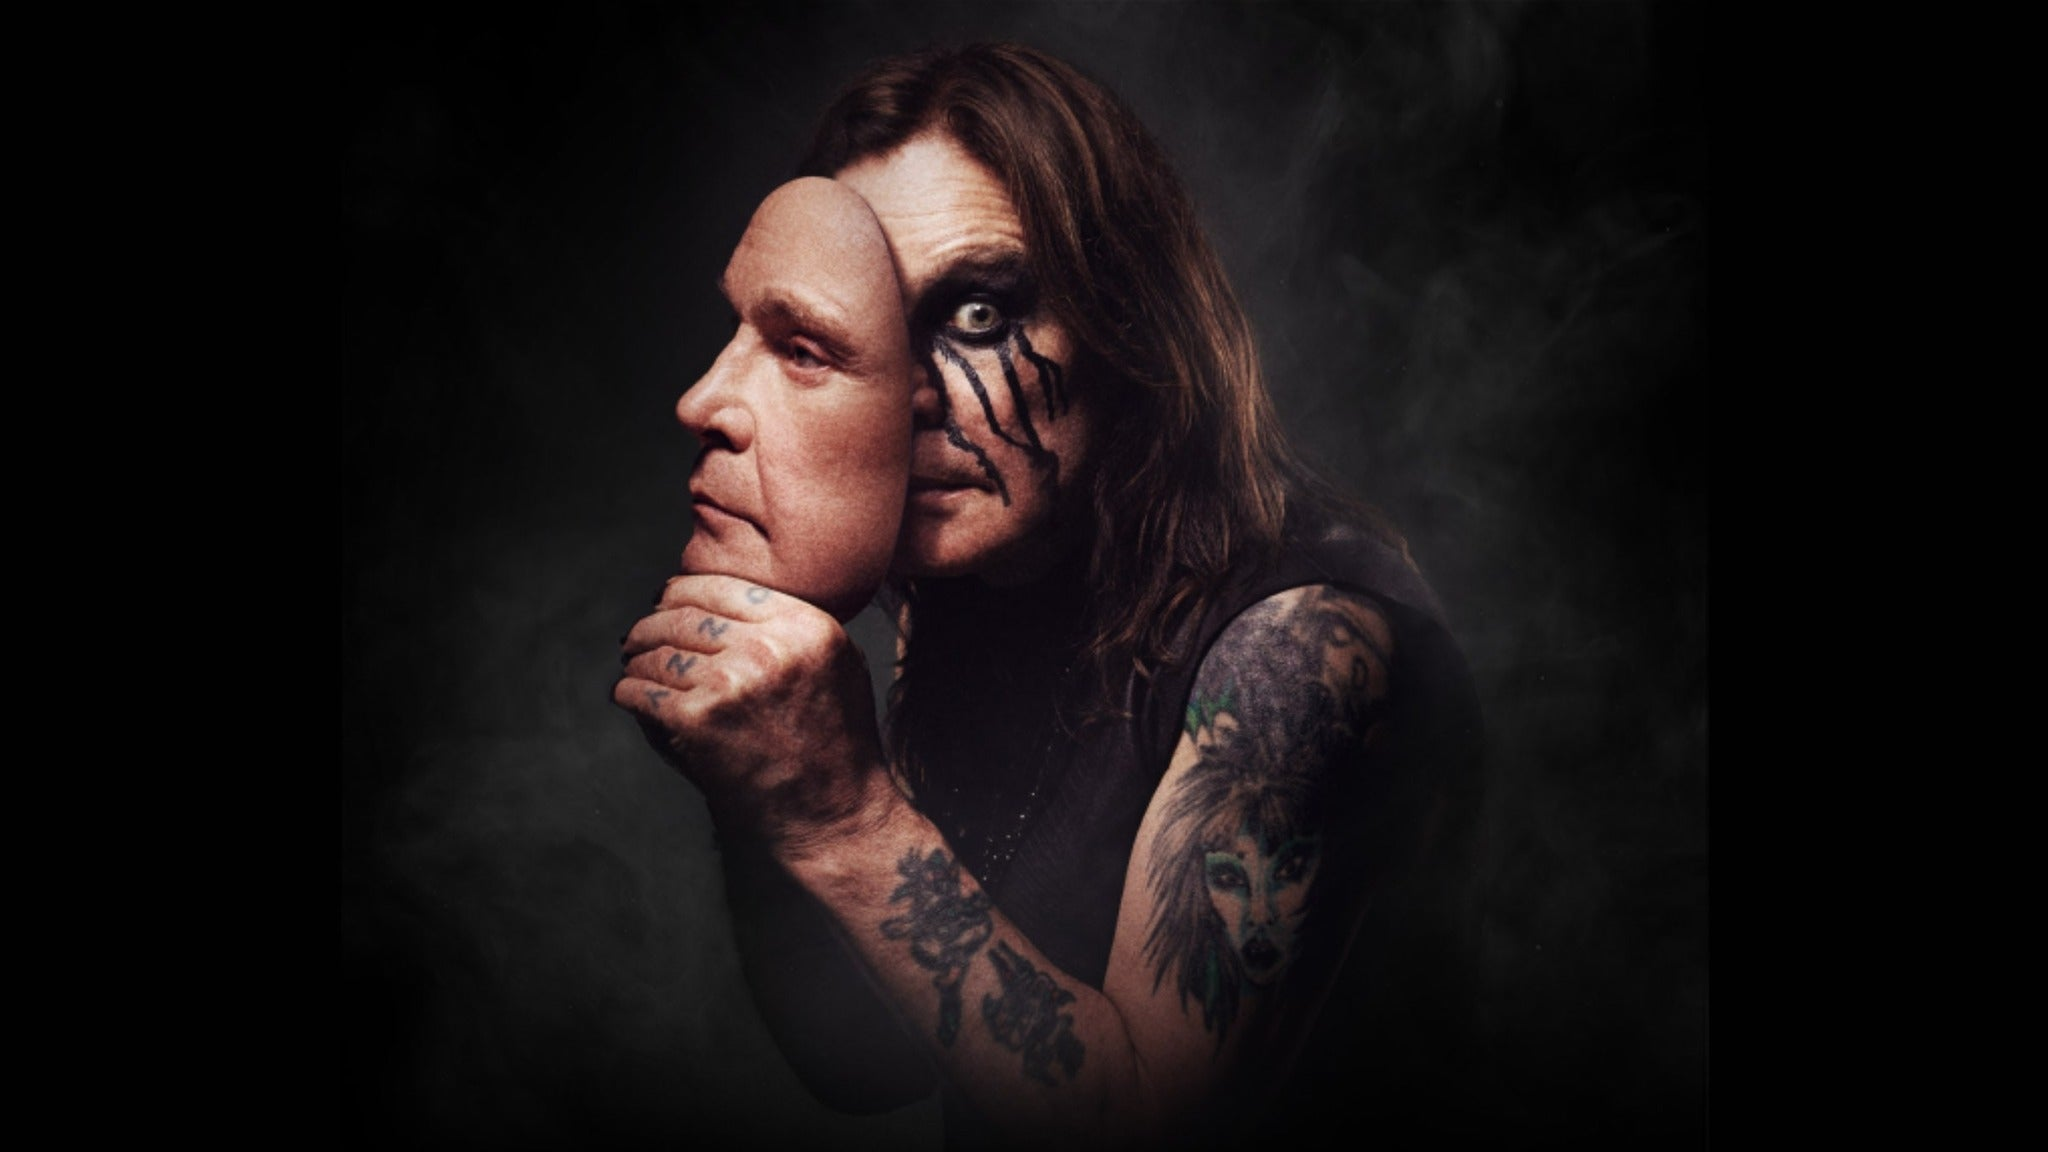 Ozzy Osbourne - Meet & Greet Packages at Hersheypark Stadium